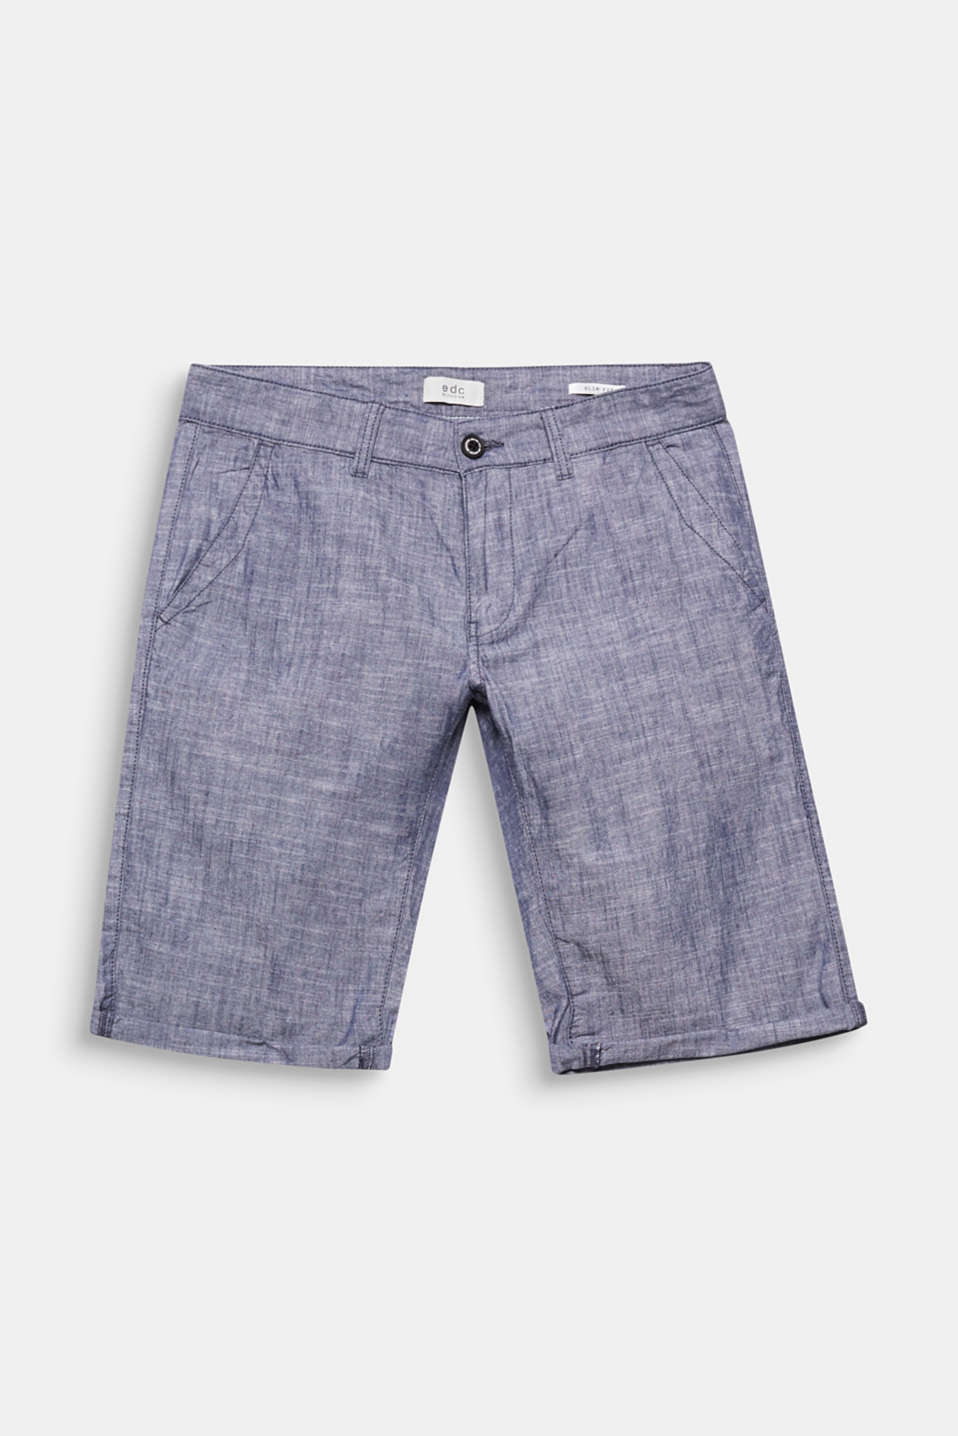 The lightweight chambray fabric and distinctive melange finish give these shorts their airy, summery look.